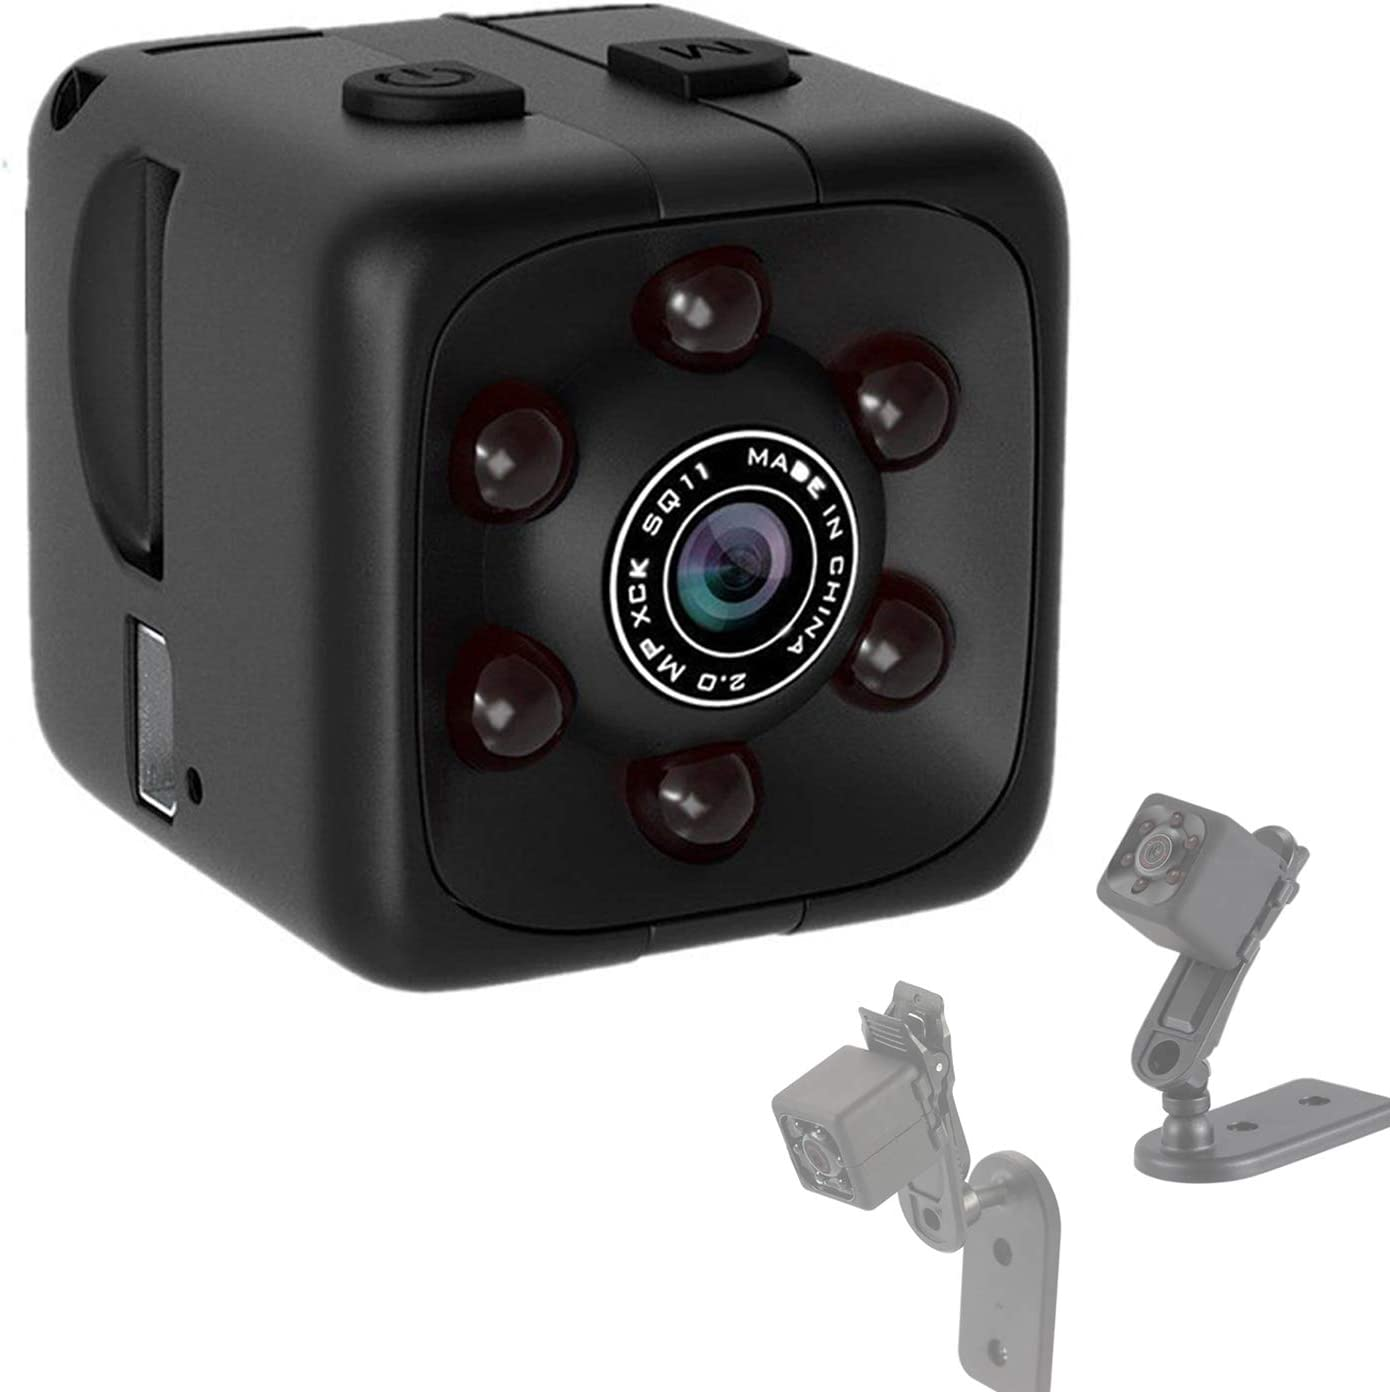 Mini Hidden Spy Camera Portable Small 1080P Wireless Cam with Night Vision and Motion Detection for Nanny/Housekeeper, Security Sports Camera. (Black-0GB)